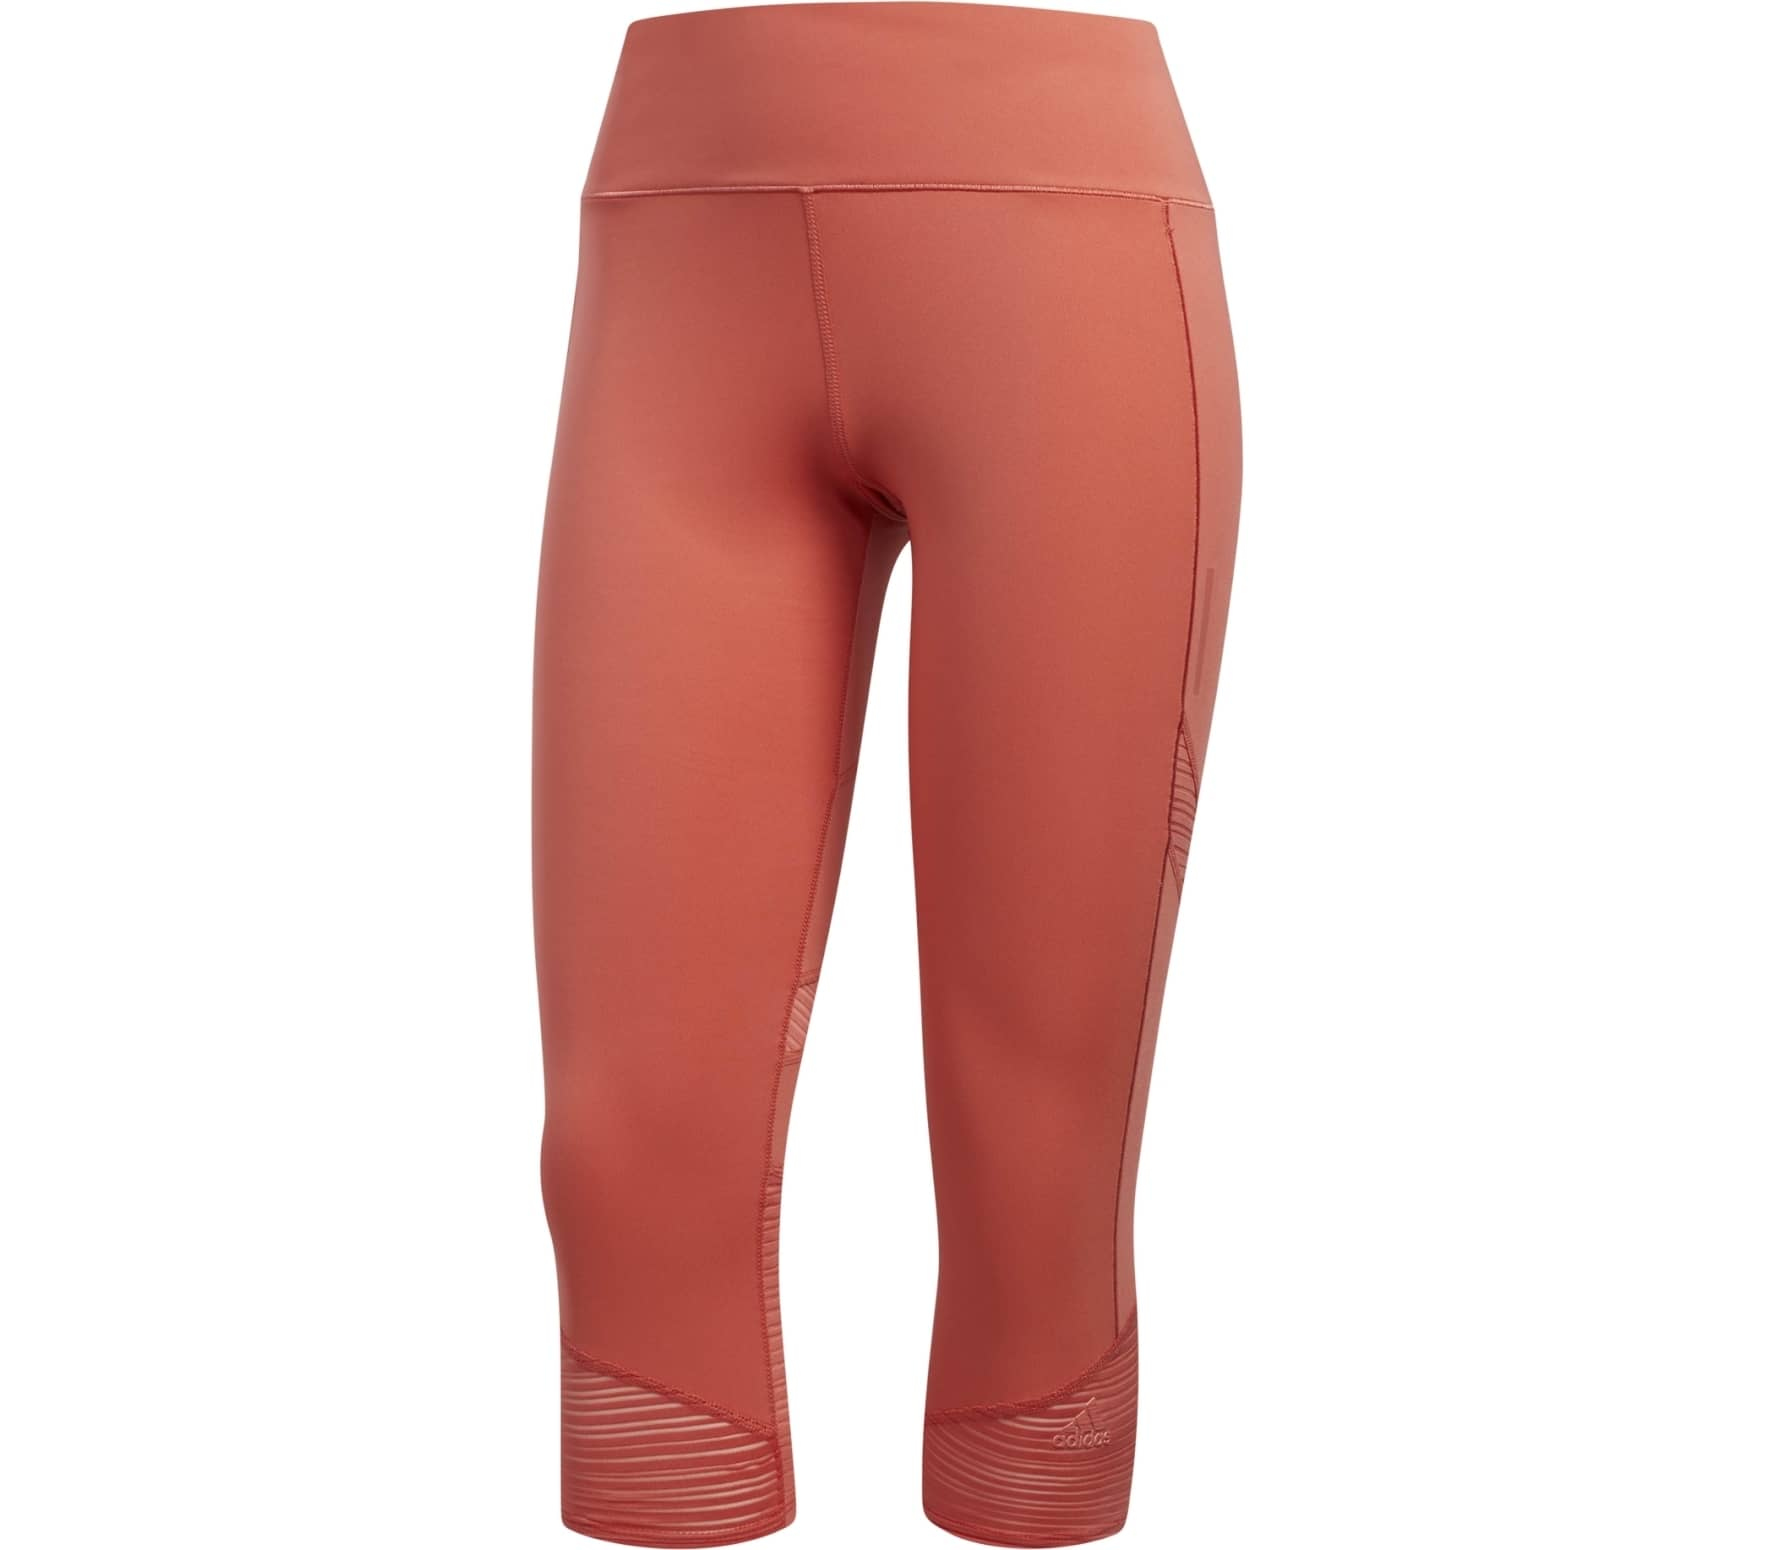 f0d71172e65 Adidas - How We Do 3/4 women's running pants (red) - buy it at the ...